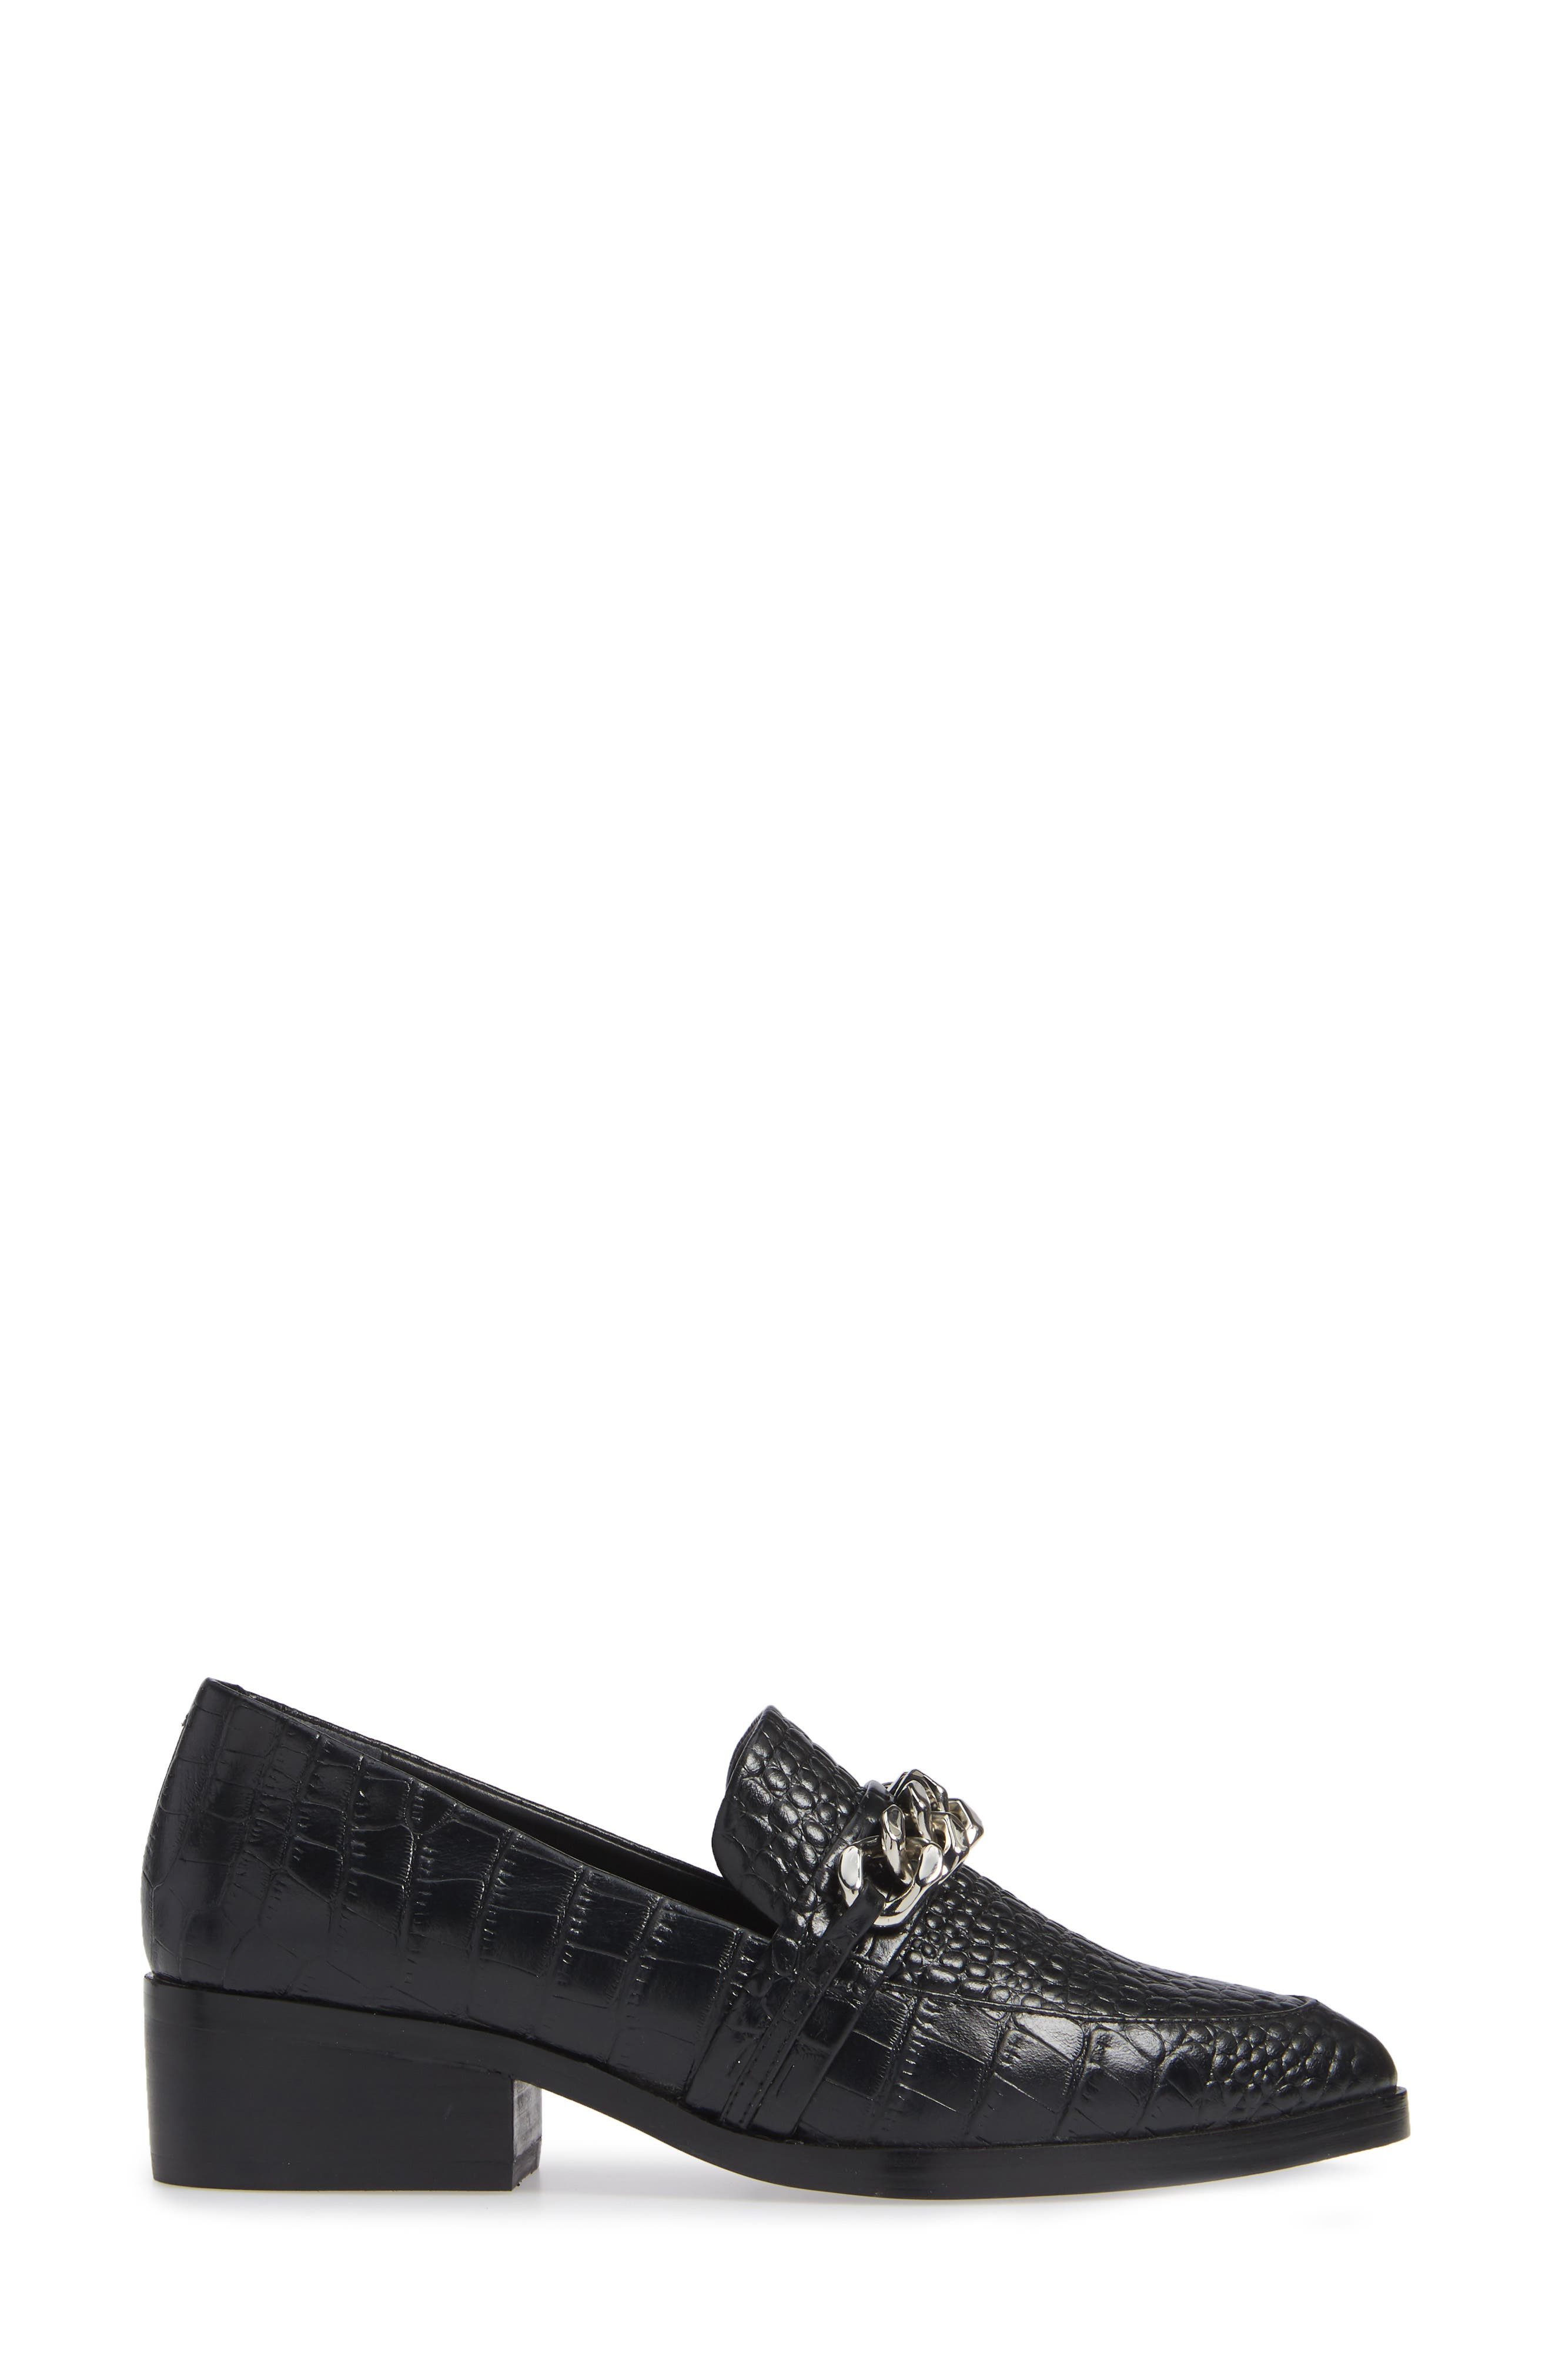 Molly Loafer,                             Alternate thumbnail 3, color,                             BLACK CROC LEATHER